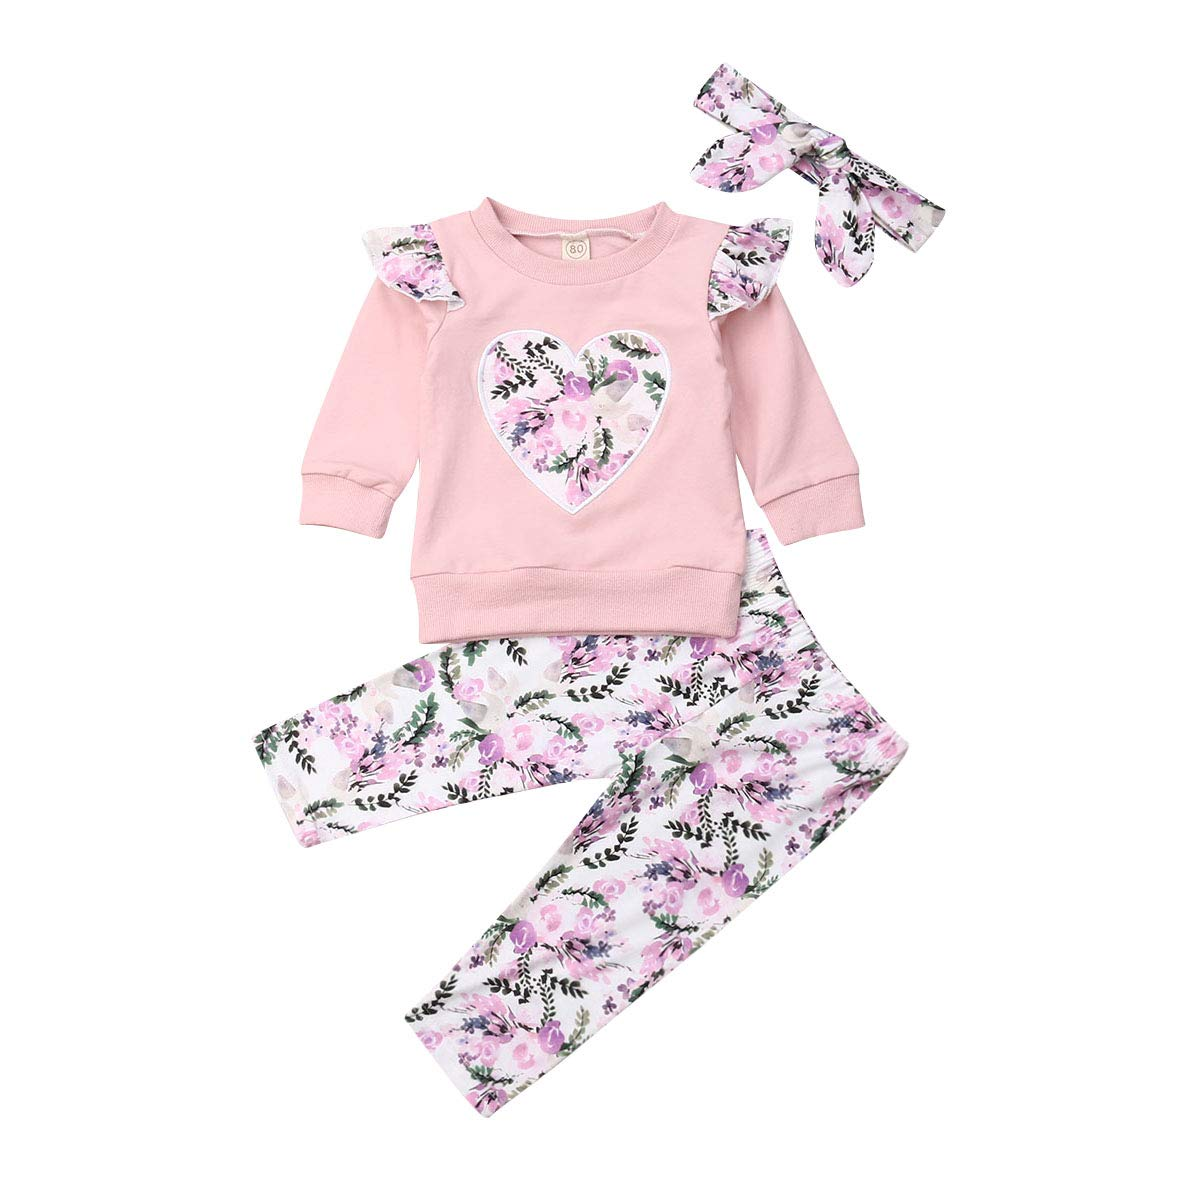 Baby Girl Clothes 1-4T Girls Long Sleeve Shirt Top Floral Leggings Pants Headband 3pcs Spring Outfits